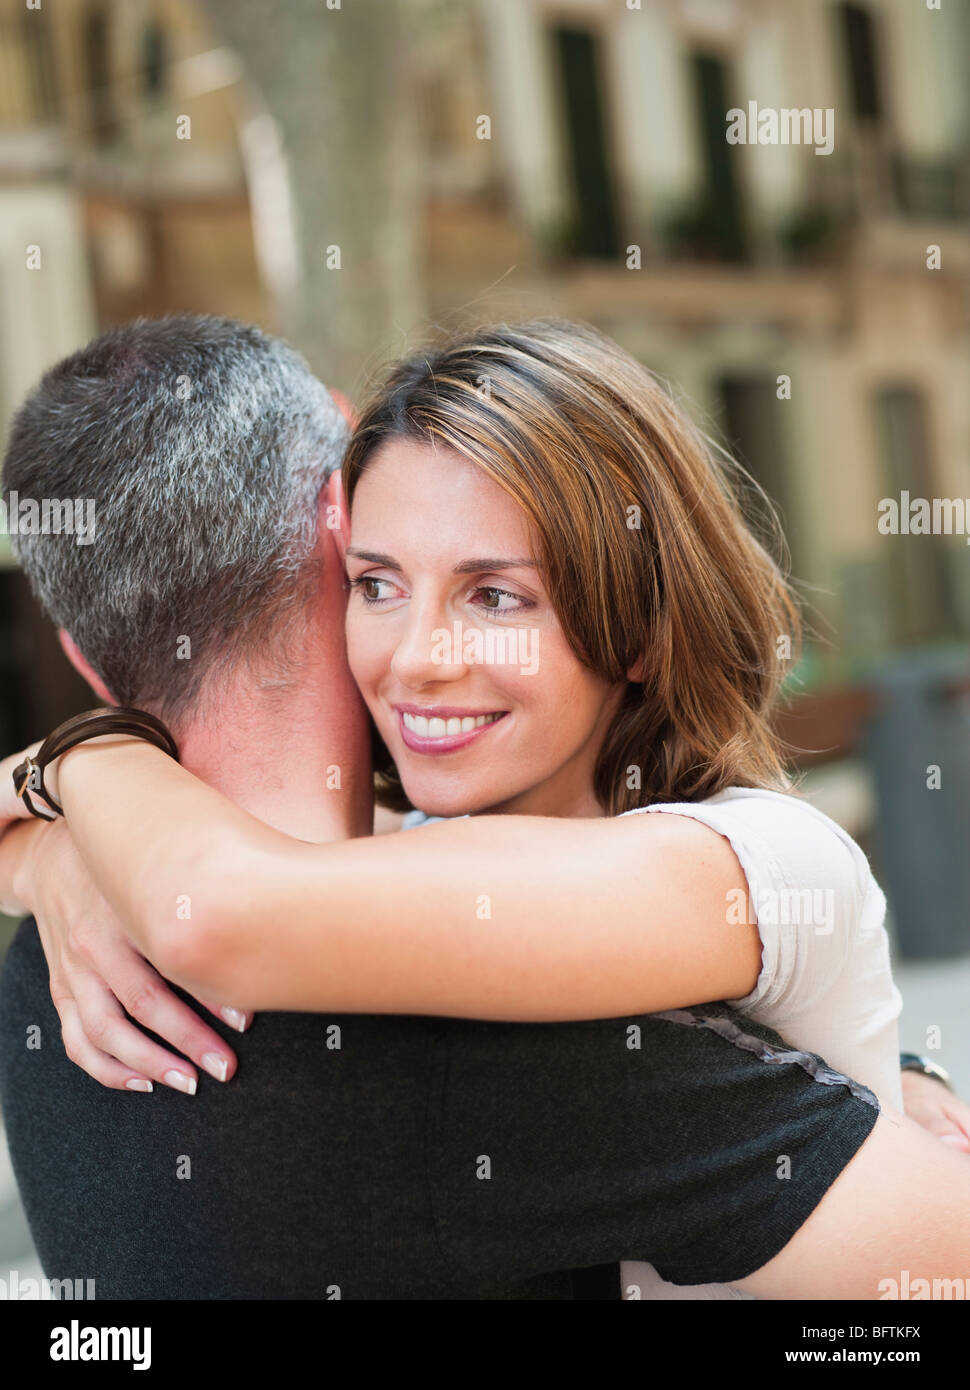 couple embracing in the street - Stock Image